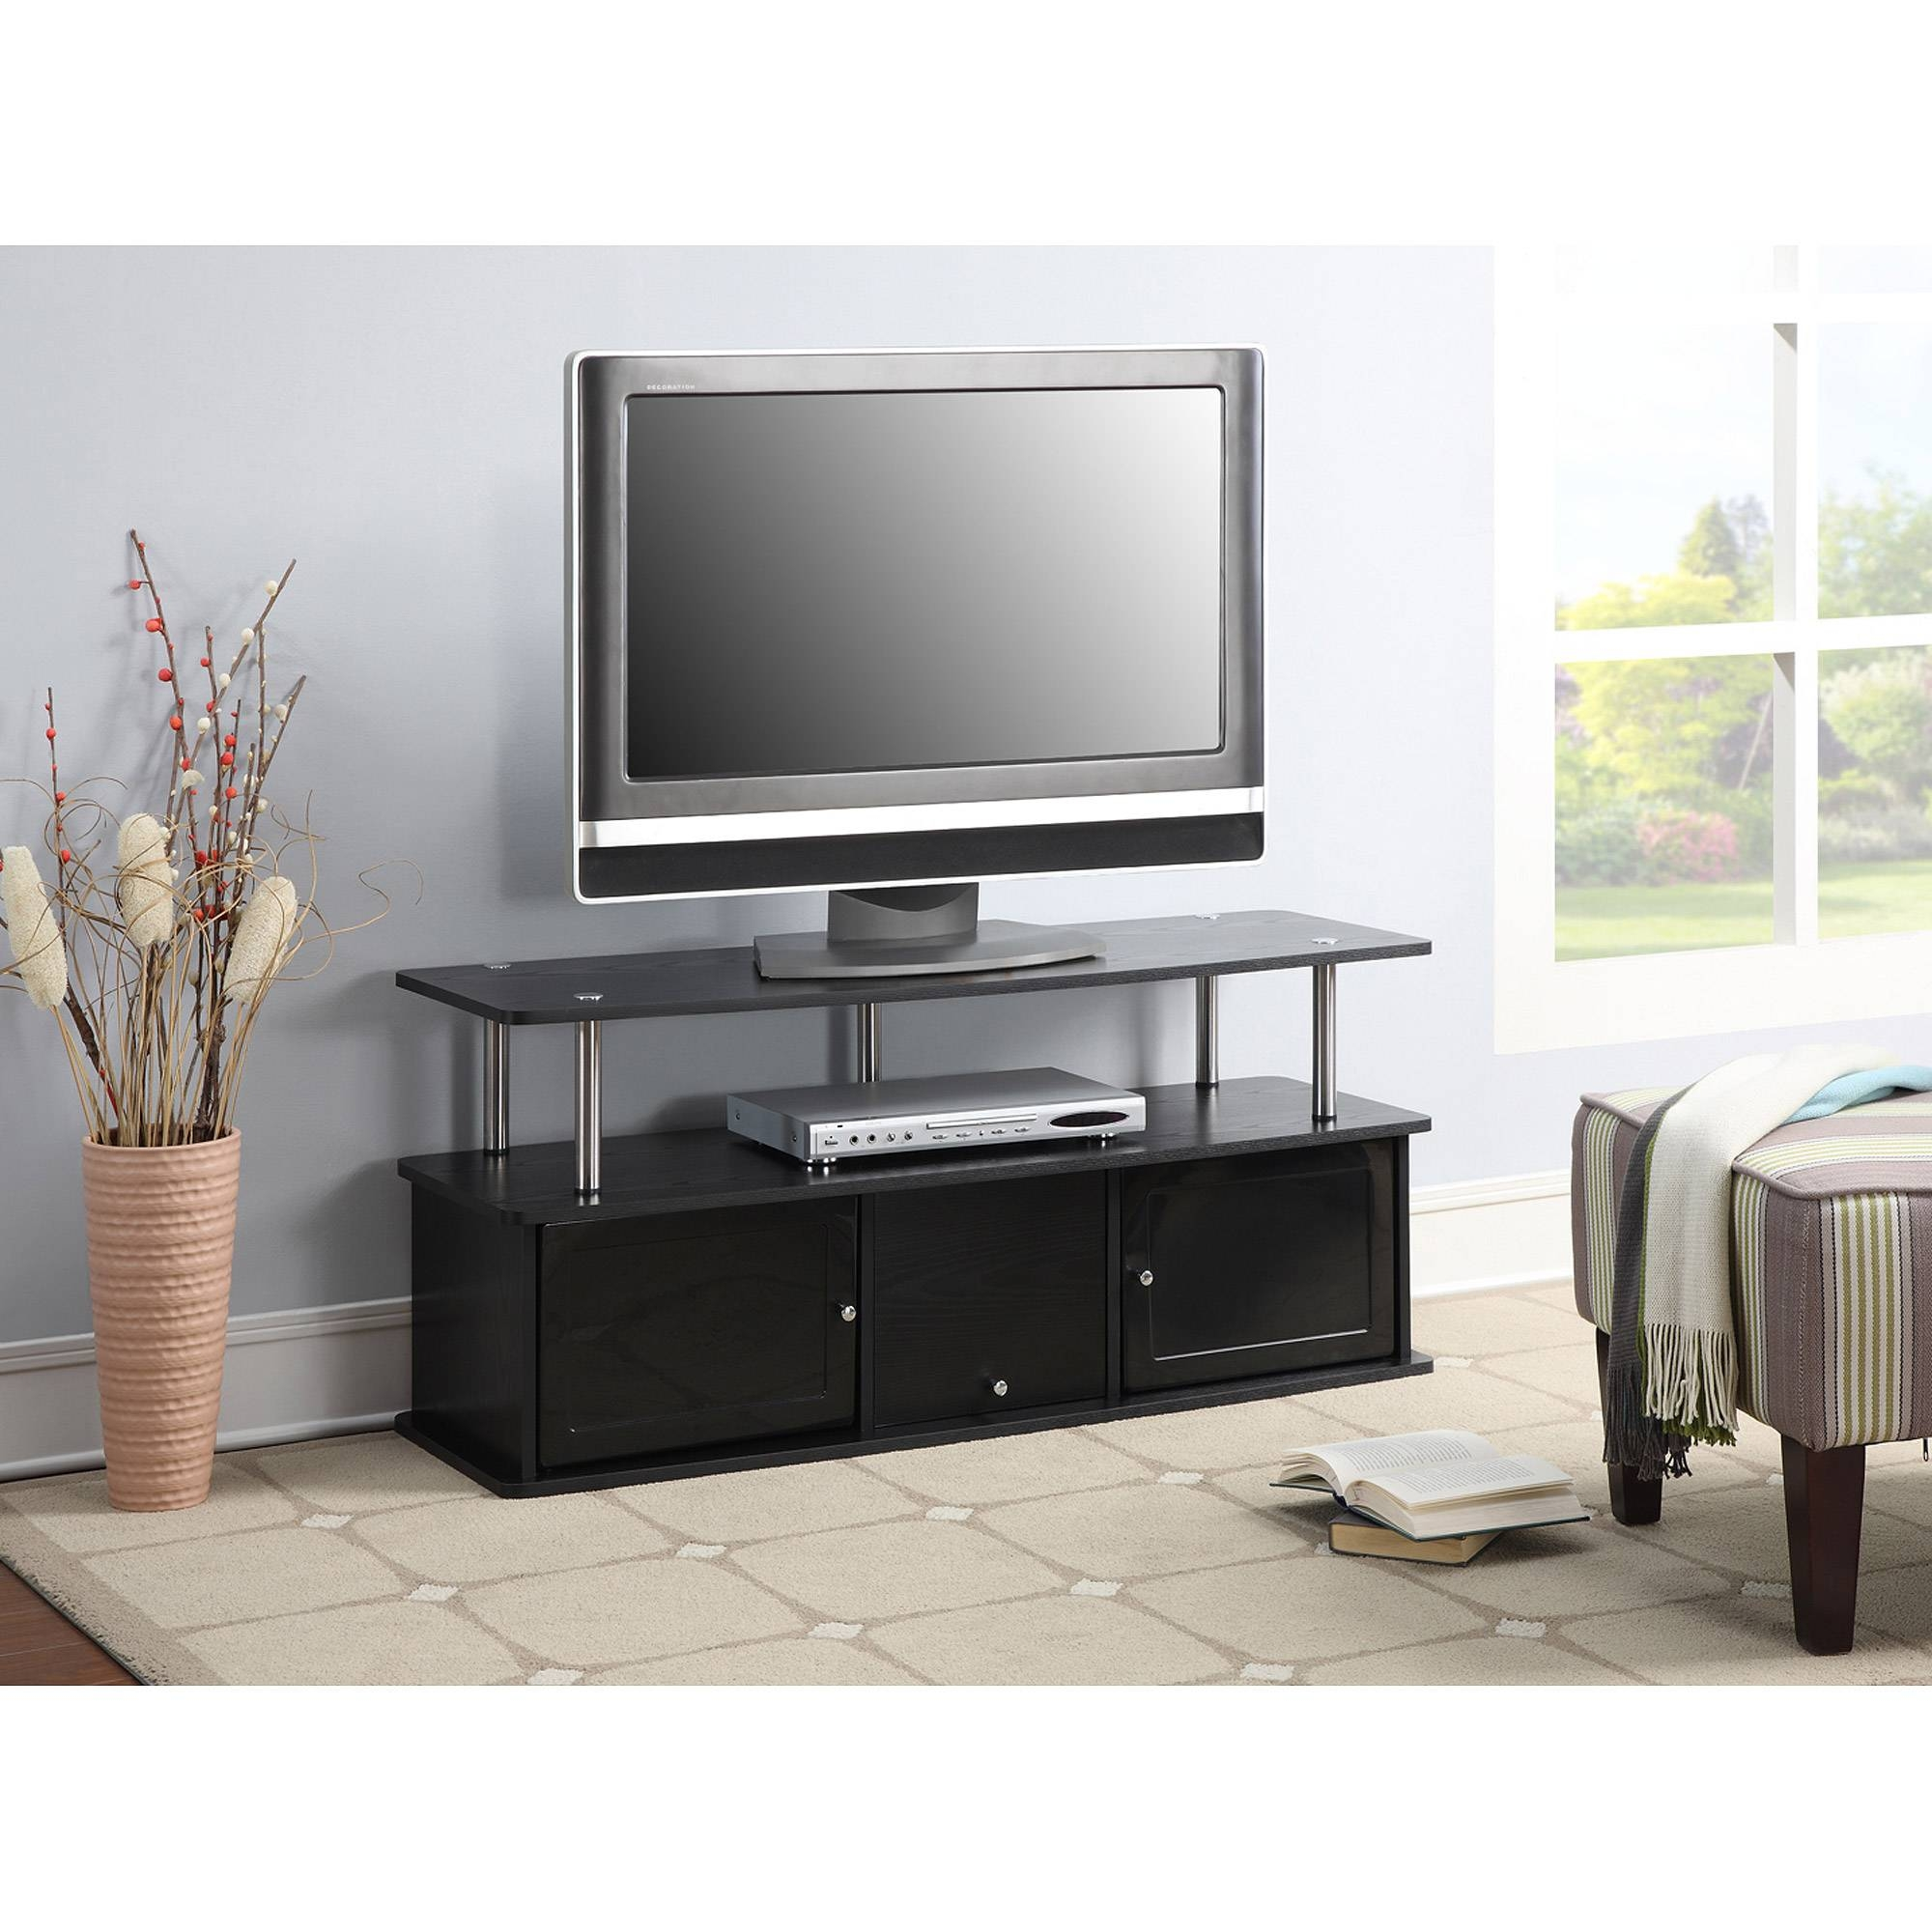 Beautiful Teak Wood Tv Stand 22 With Additional Home Wallpaper pertaining to Grey Wood Tv Stands (Image 1 of 15)